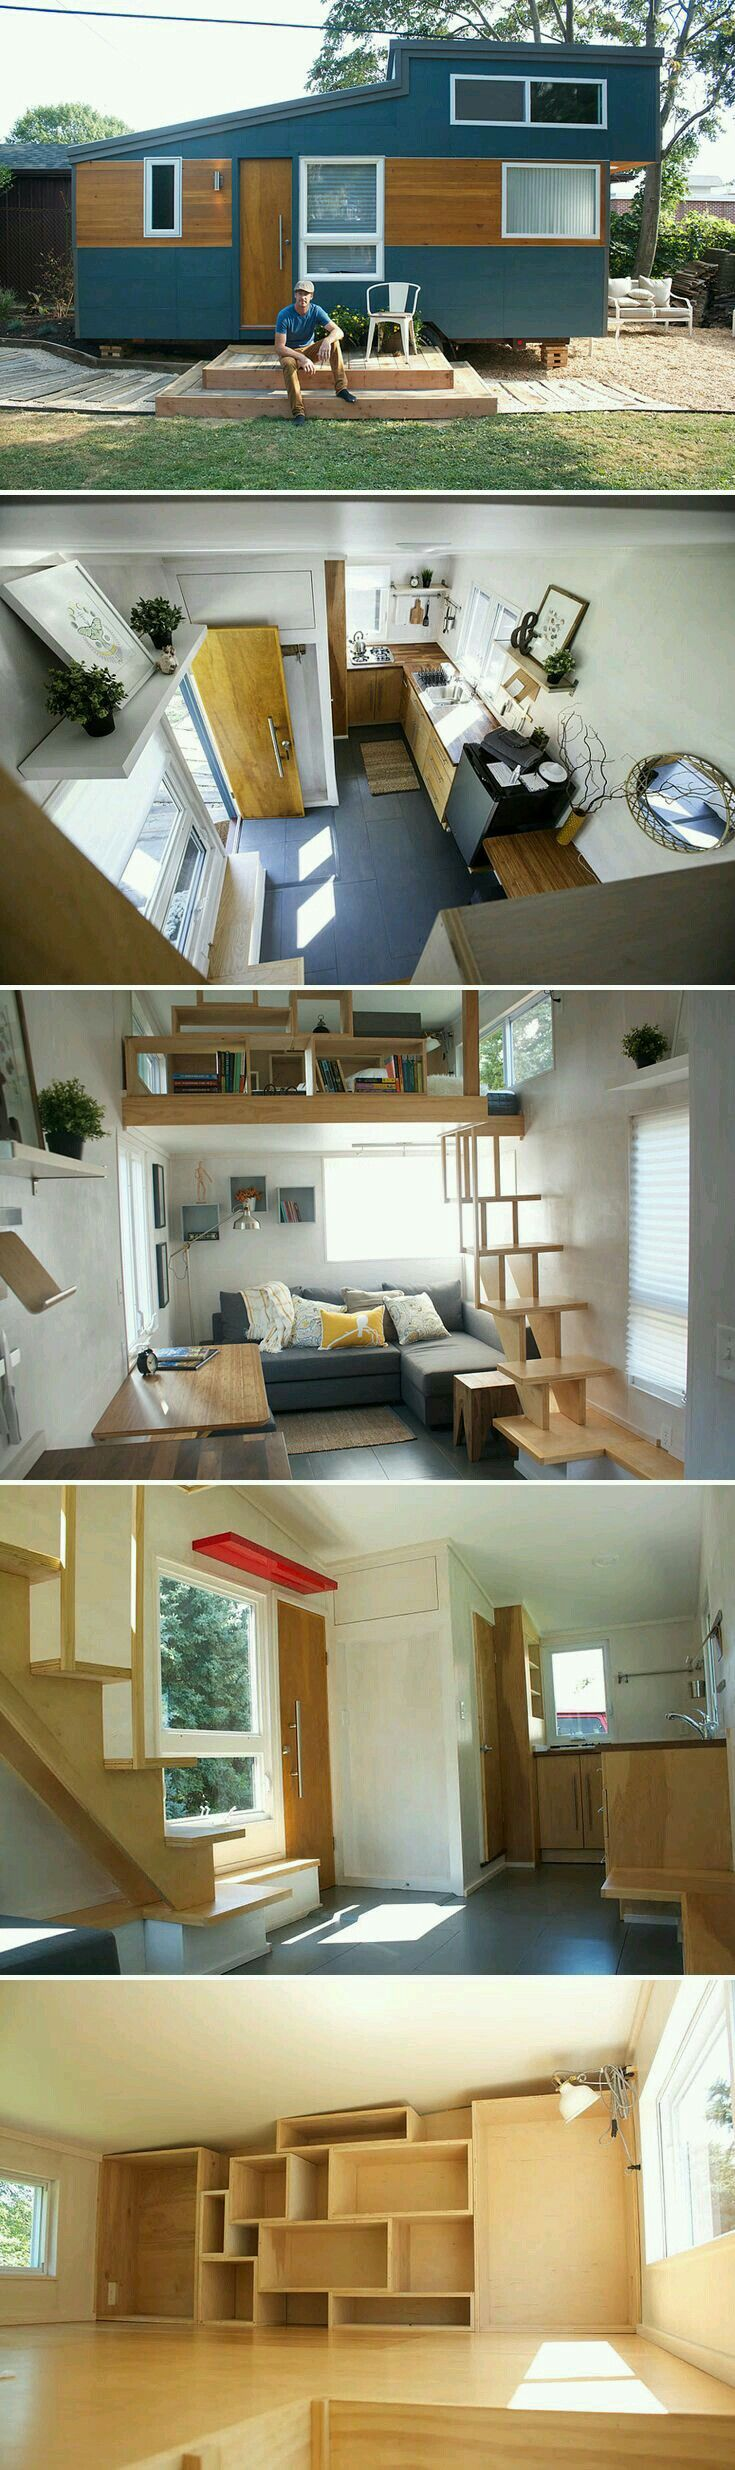 Shelving in loft 171 best Tiny House